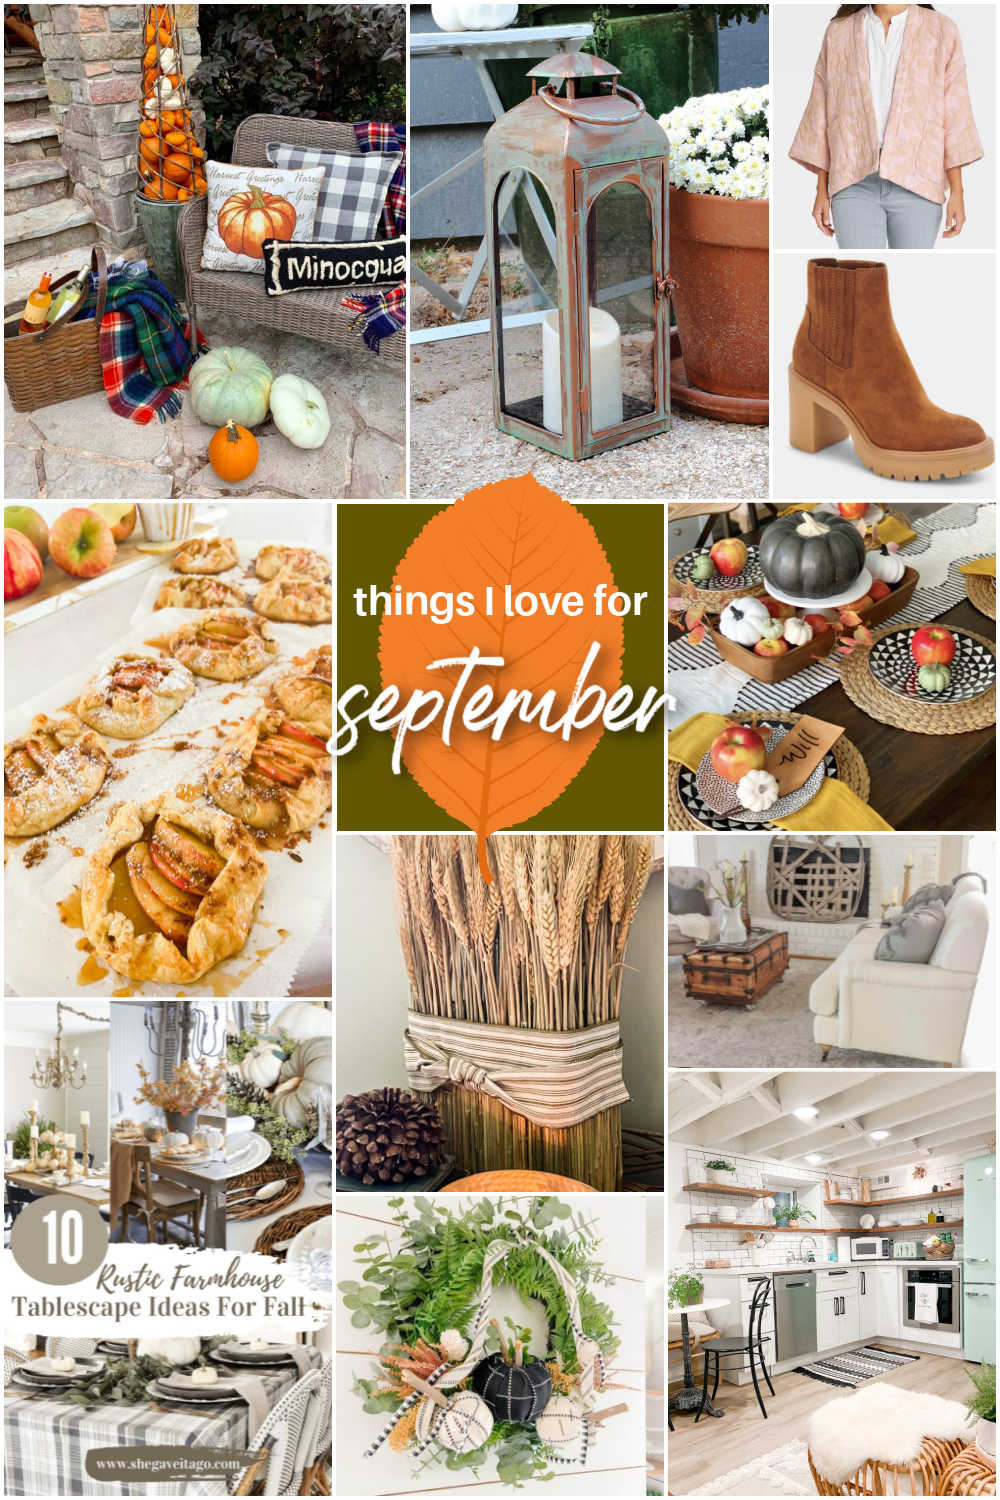 Welcome Home Saturday - Things I Love This Week! Fall fashion, finds, decor and DIY projects!